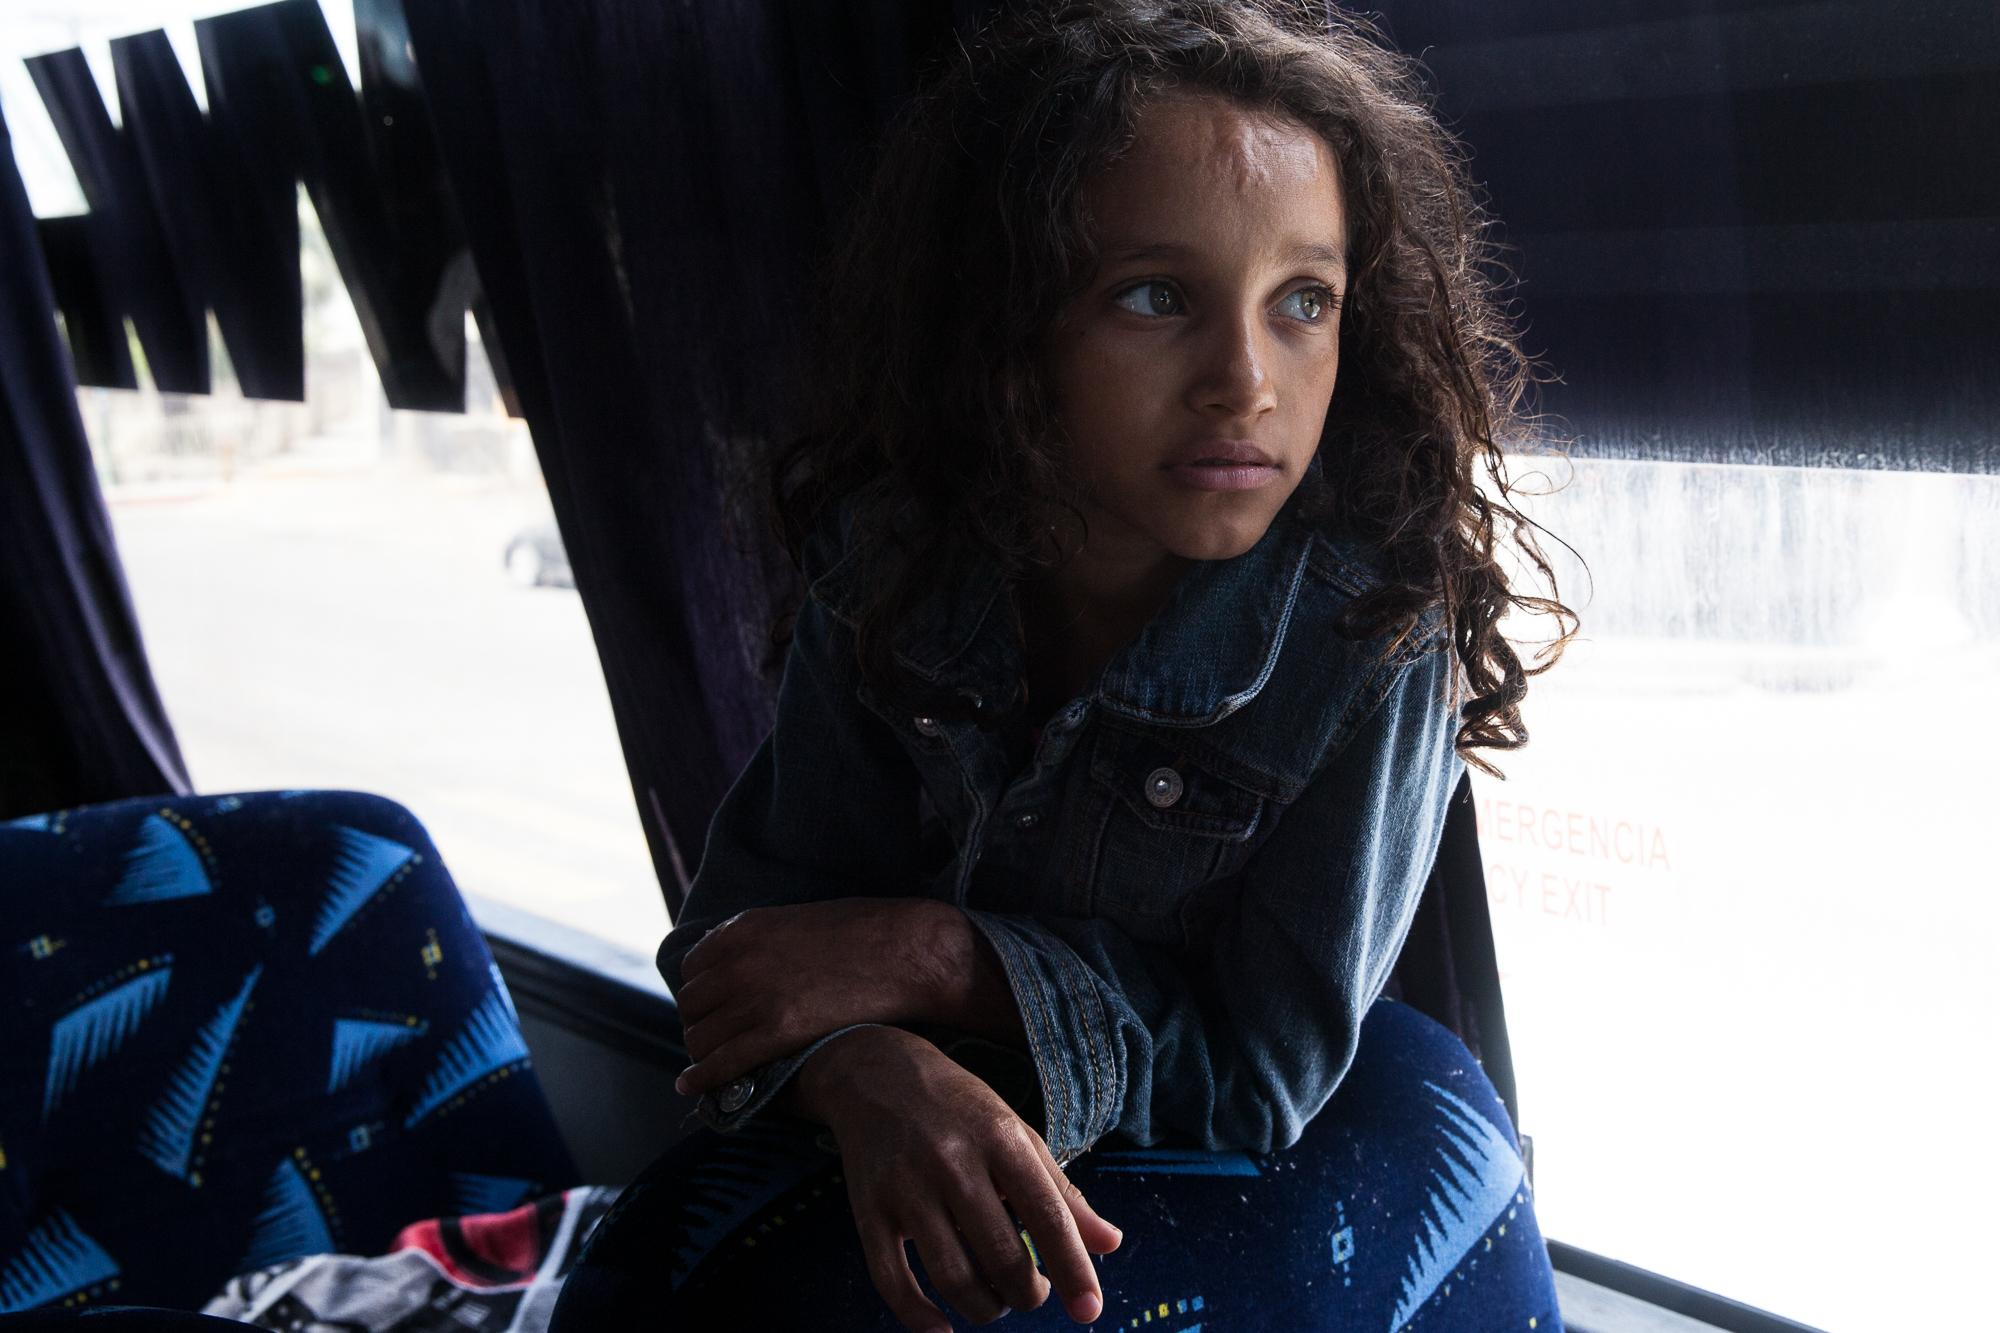 A young girl with burn marks from Central America watches television while people board a bus that is headed to Tijuana, MX on April 24, 2018. The bus stopped in Mexicali, MX, for about two hours while volunteers fed them, medical professionals were available, people were able to charge phones and relax in a big room.